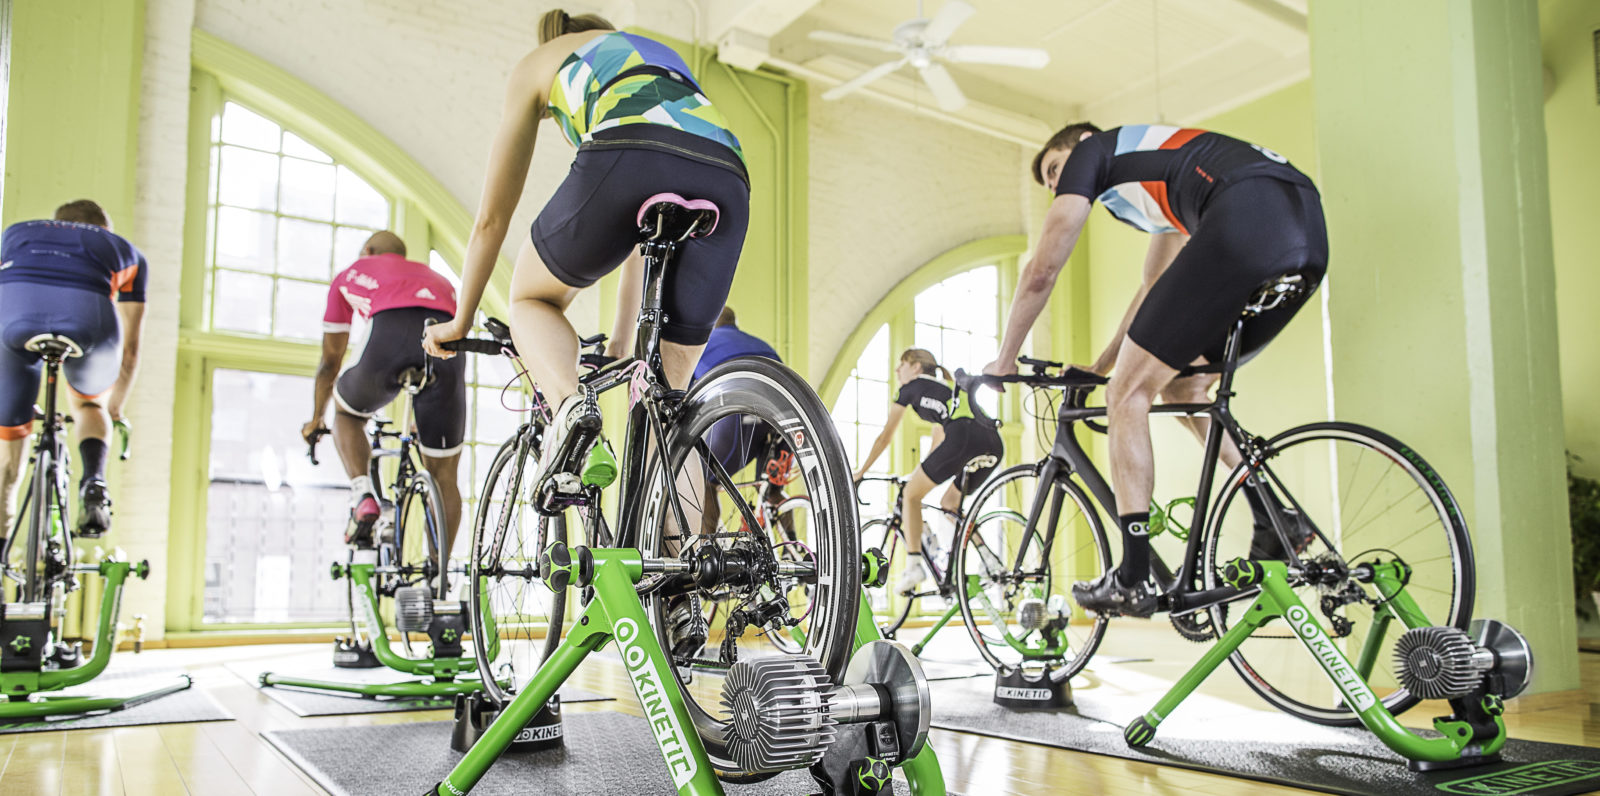 1f4ce535fd Assabet River Bicycles once again teams up with Velobene SynchroRide® to  bring you an inspired hour of indoor cycling. Spend time with us each week  to keep ...